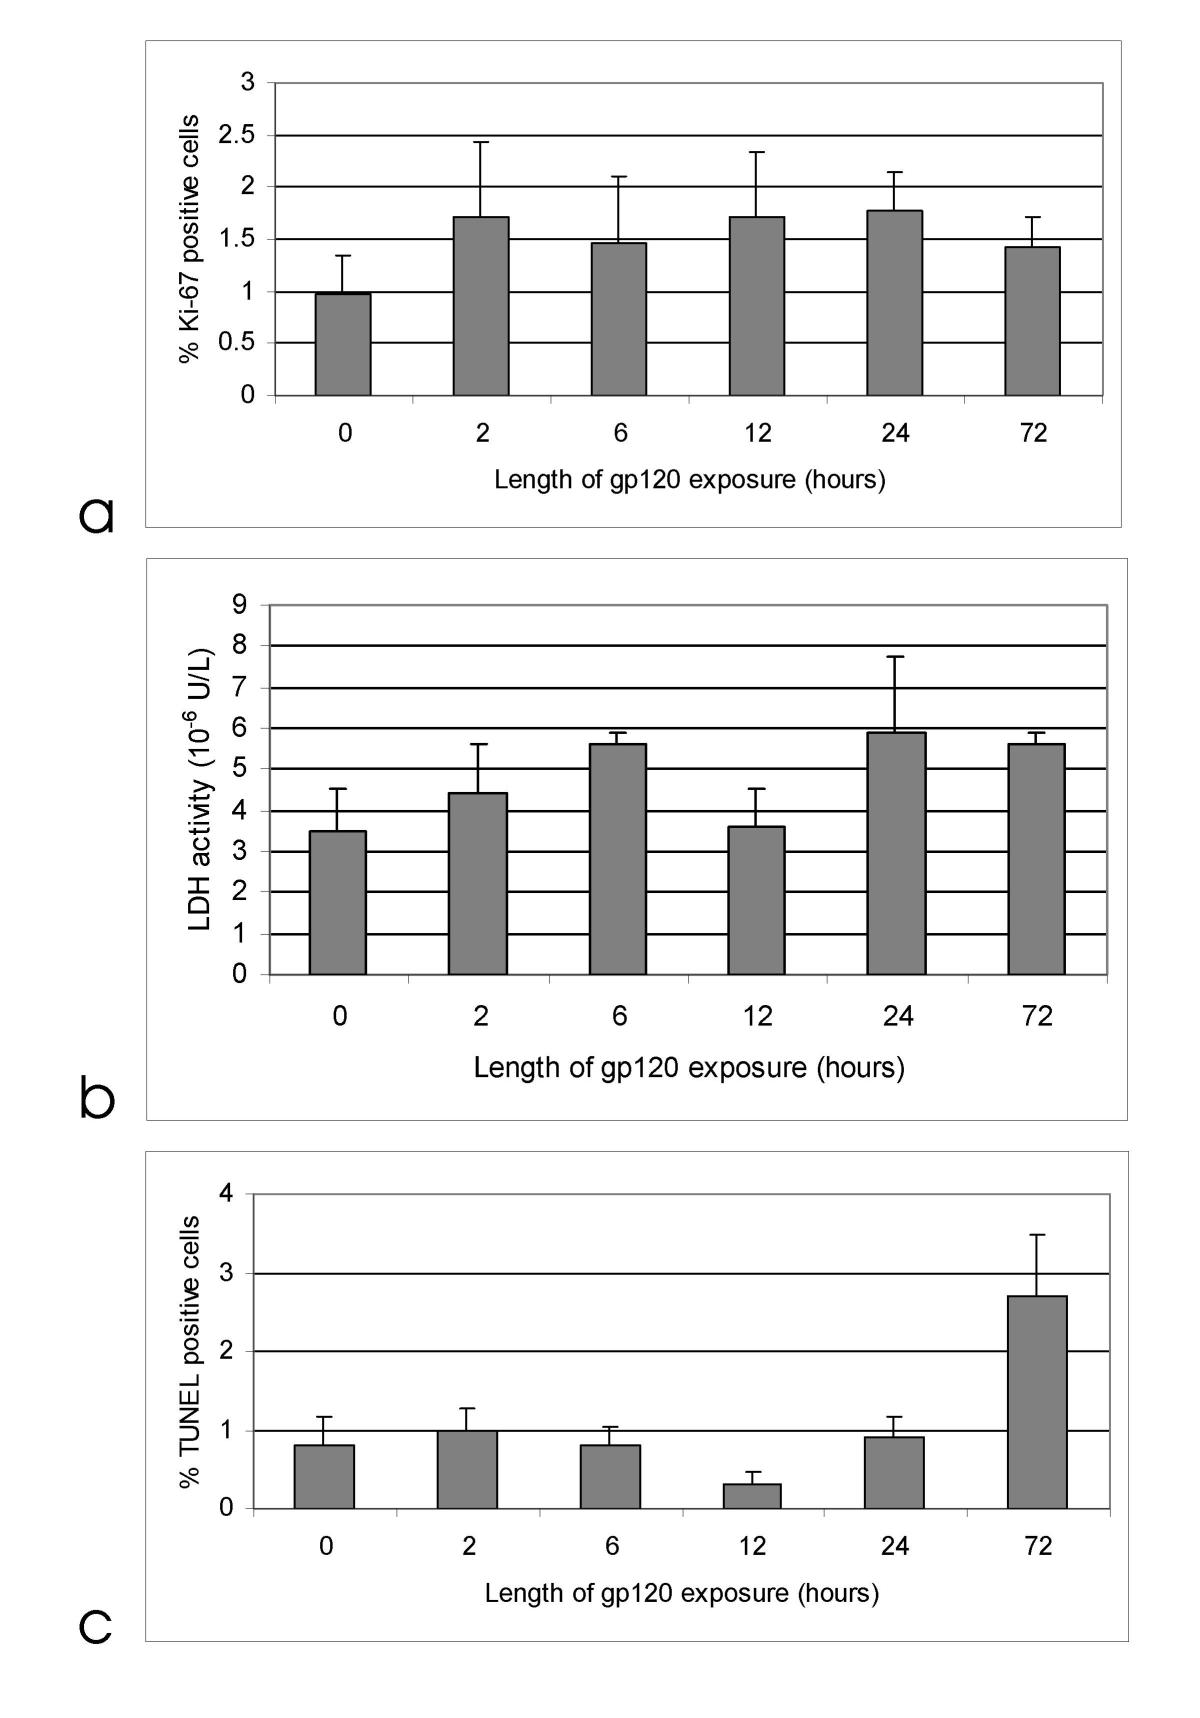 http://static-content.springer.com/image/art%3A10.1186%2F1742-2094-1-7/MediaObjects/12974_2004_Article_7_Fig4_HTML.jpg